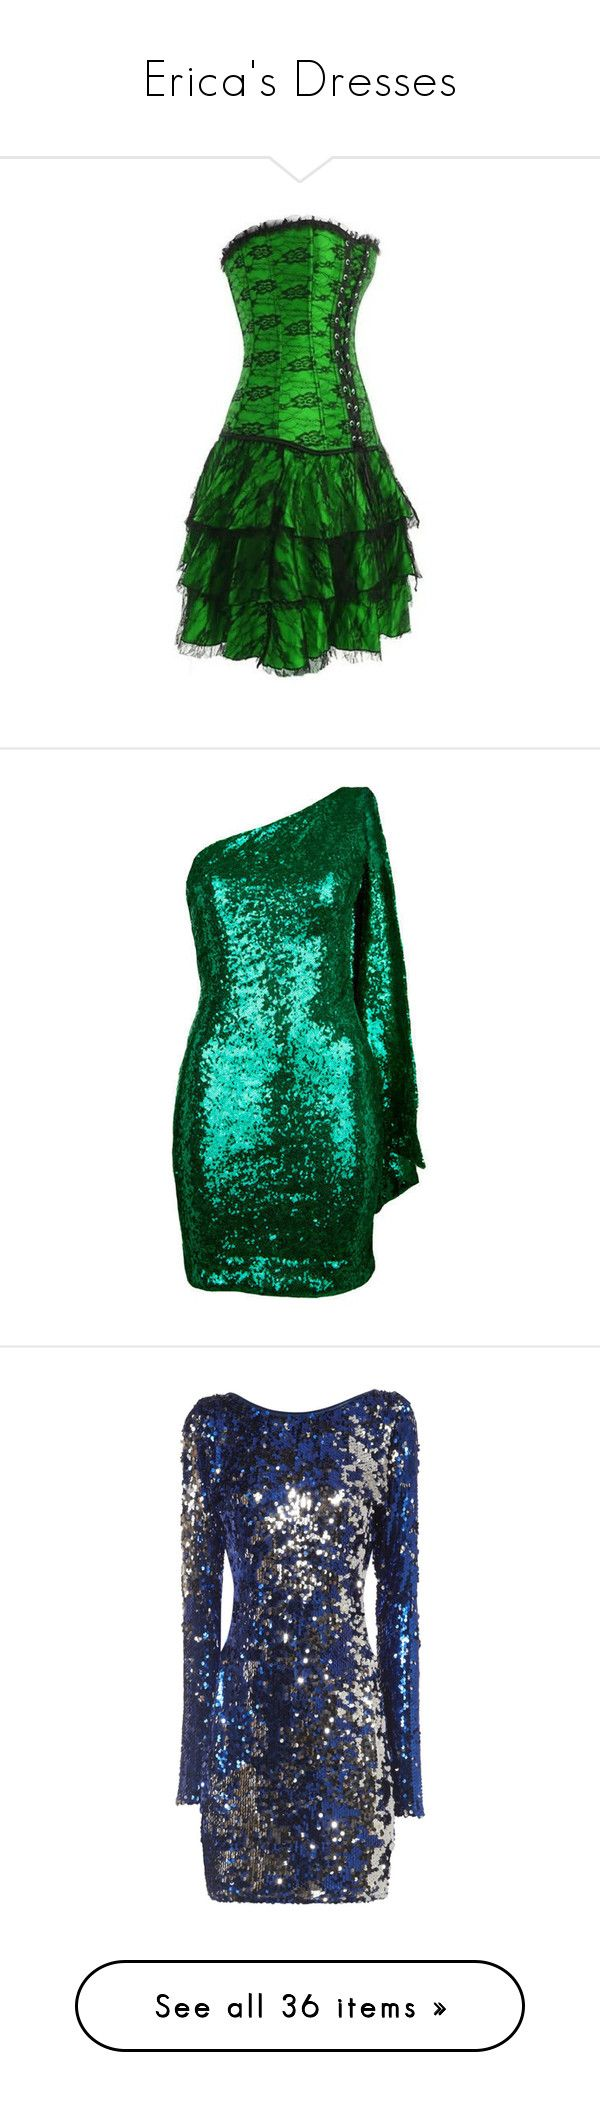 """""""Erica's Dresses"""" by lindsay-nicole ❤ liked on Polyvore featuring dresses, corset, short dresses, green, lace cocktail dresses, mini dress, lace dress, green corset dress, green mini dress and vestidos"""